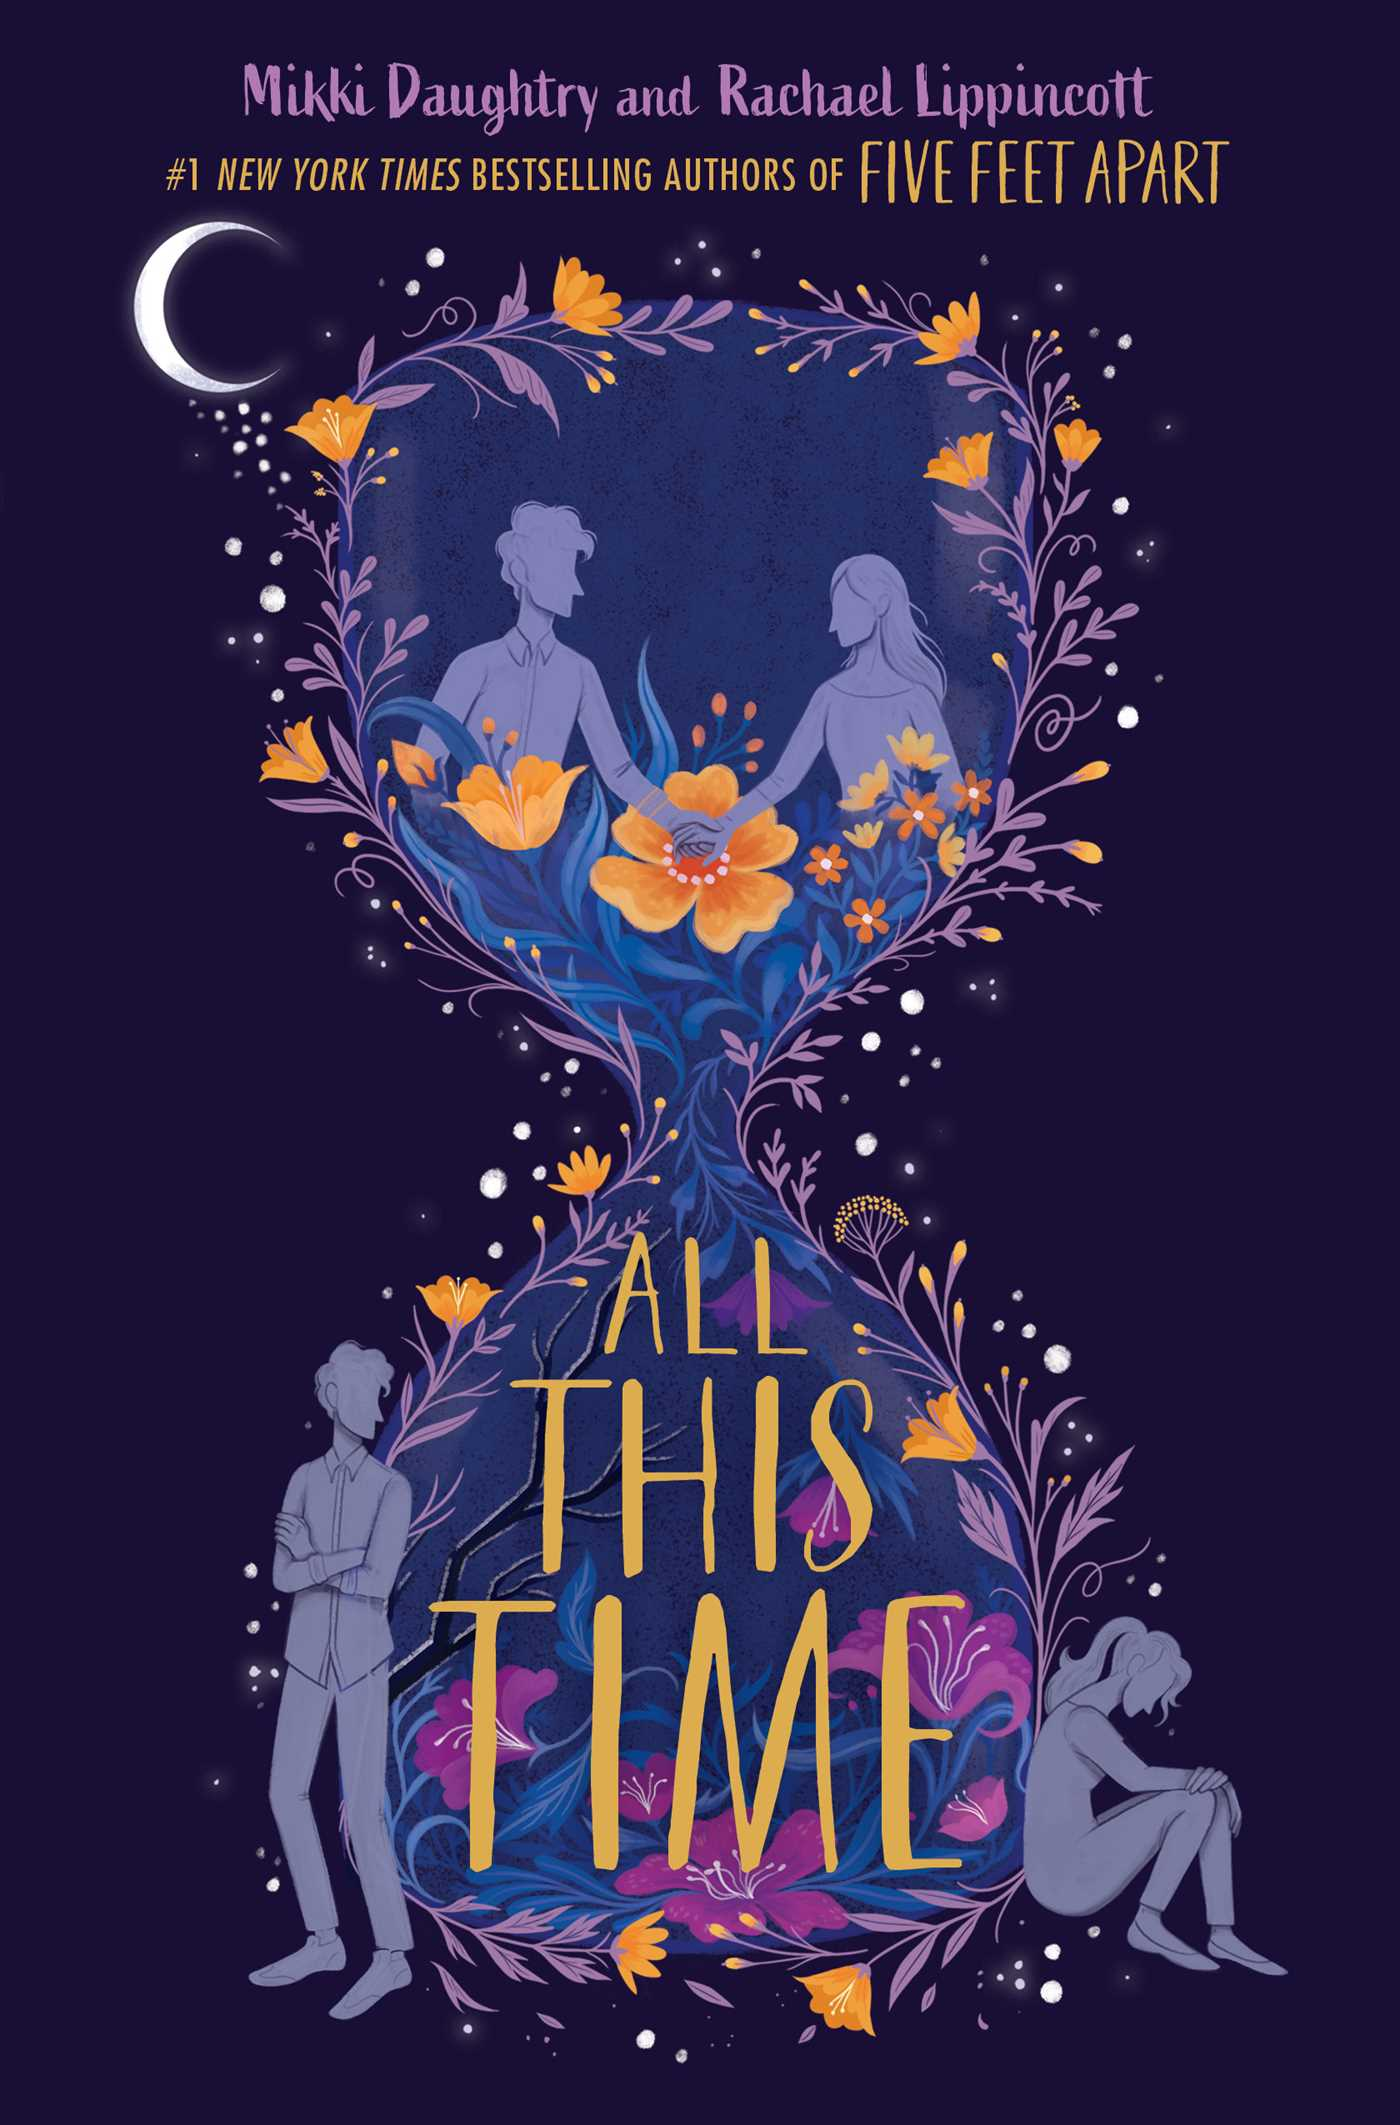 All This Time by Rachael Lippincott, Mikki Daughtry